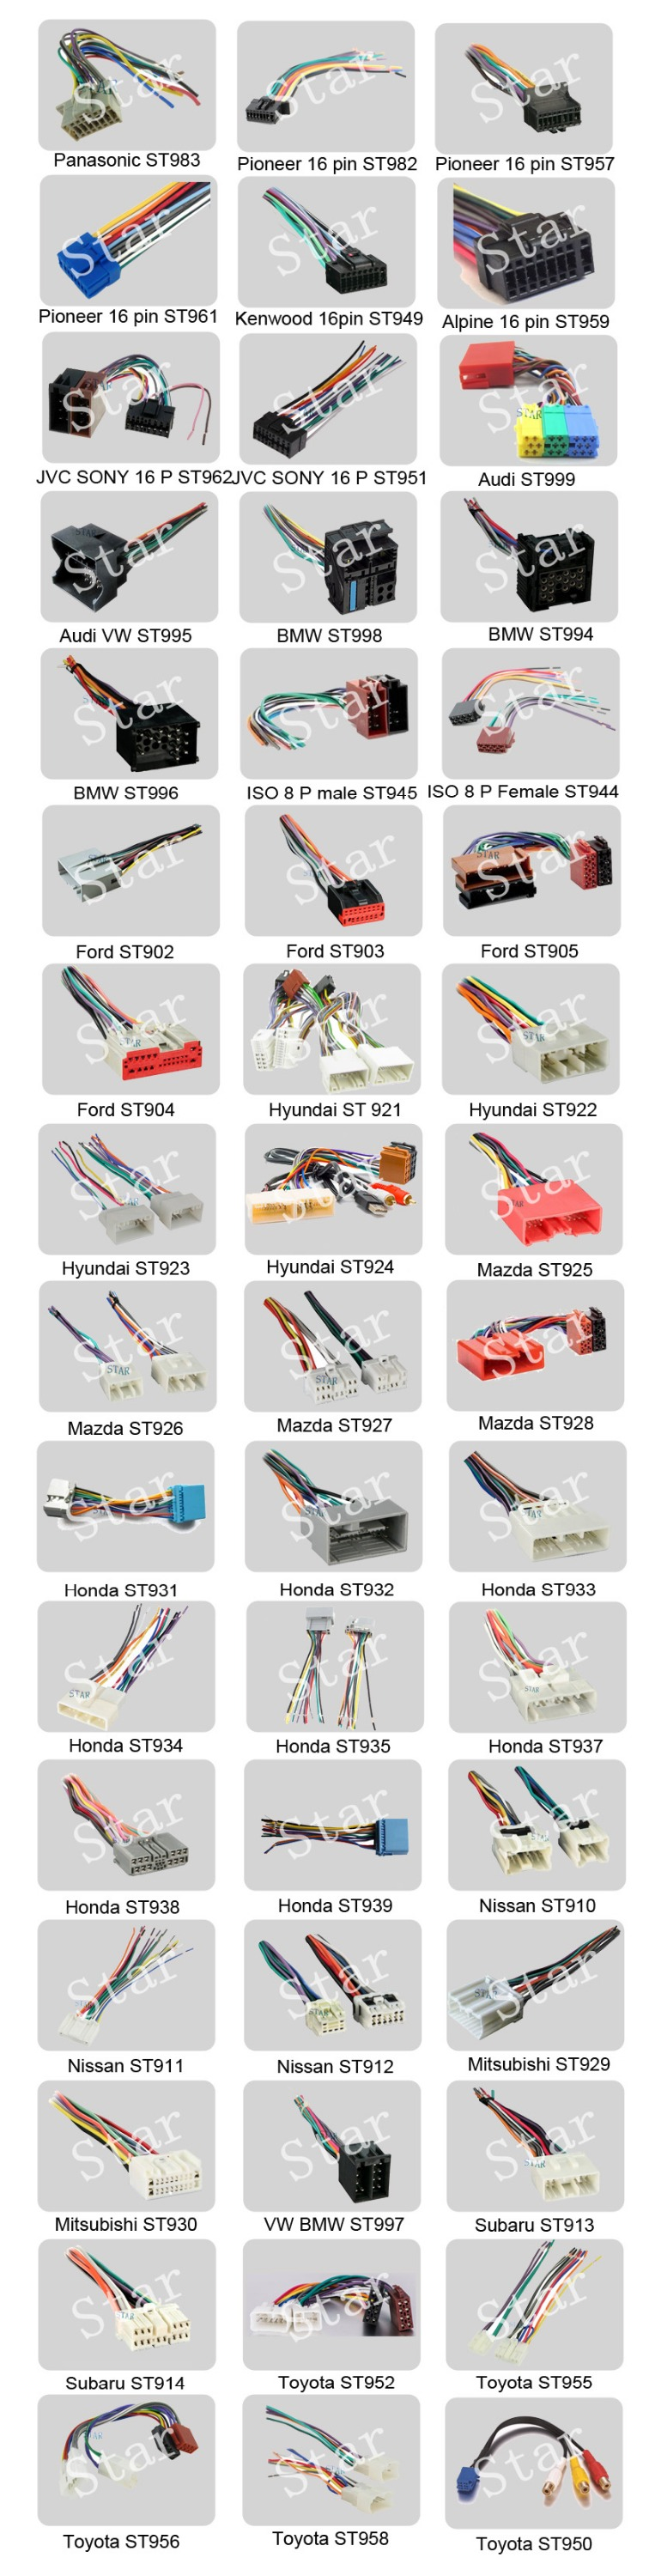 factory auto car electrical iso connector wiring harness for factory auto car electrical iso connector wiring harness for different audio brands